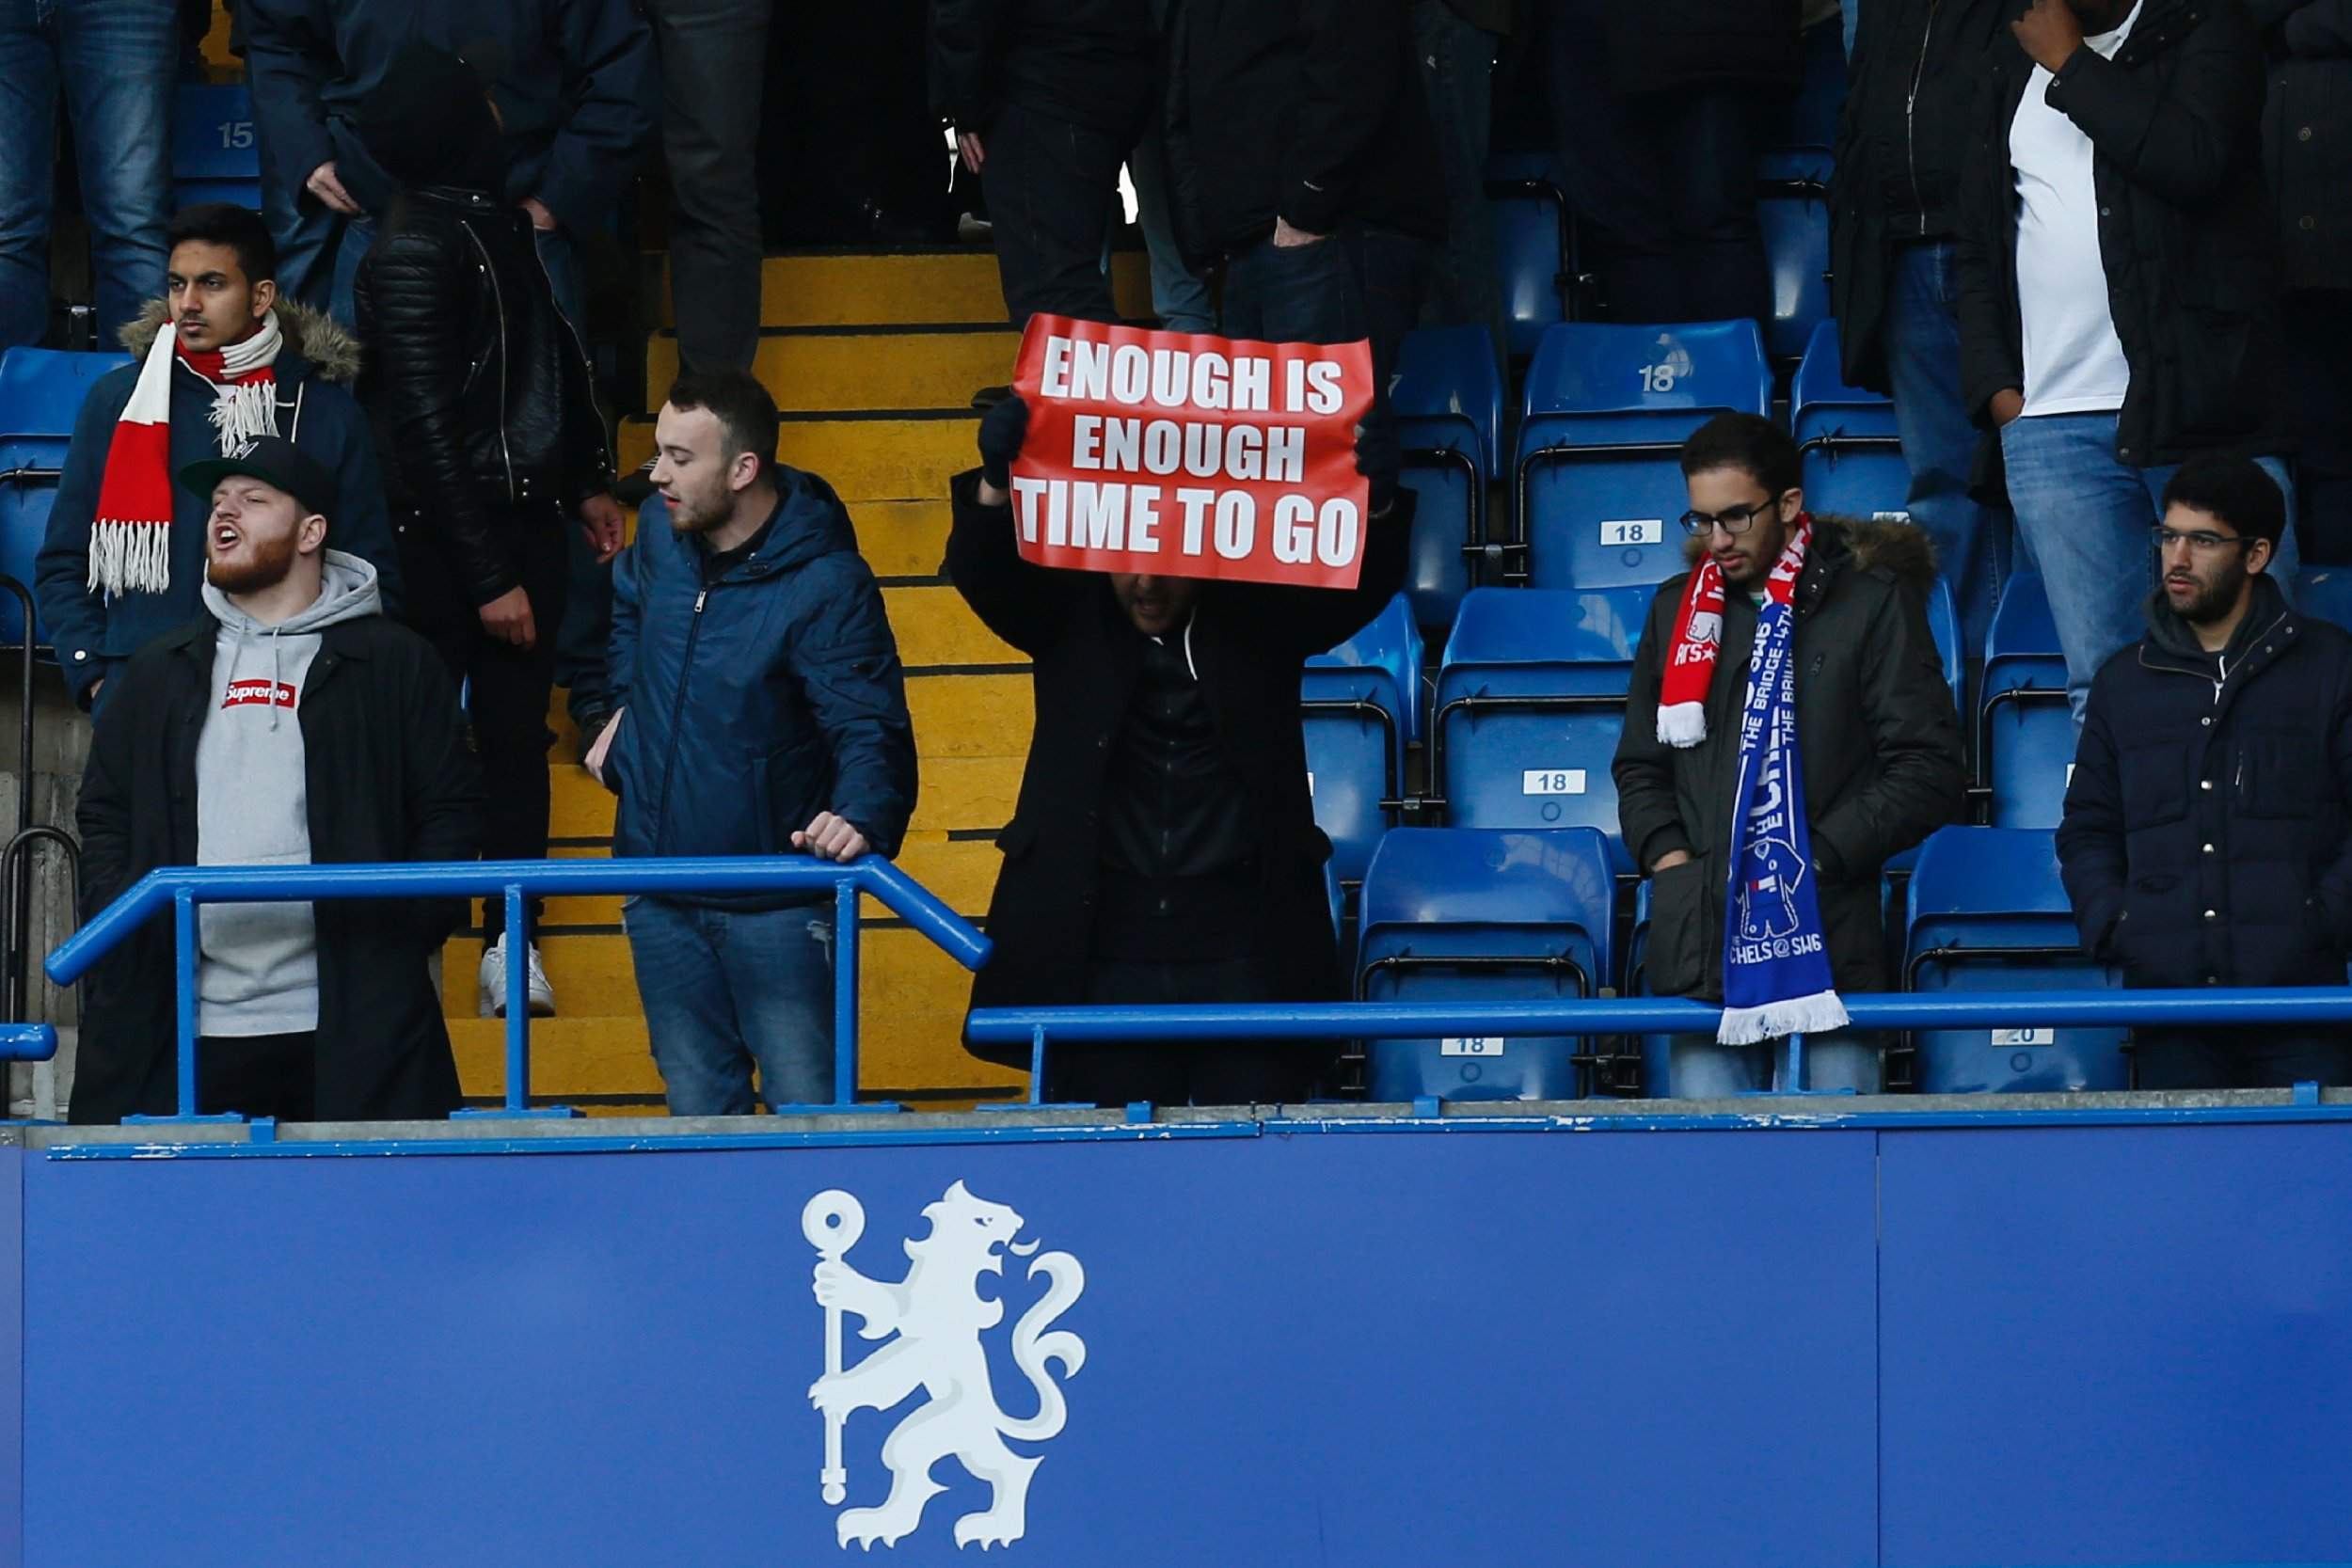 Arsenal supporters protest at Stamford Bridge, London.